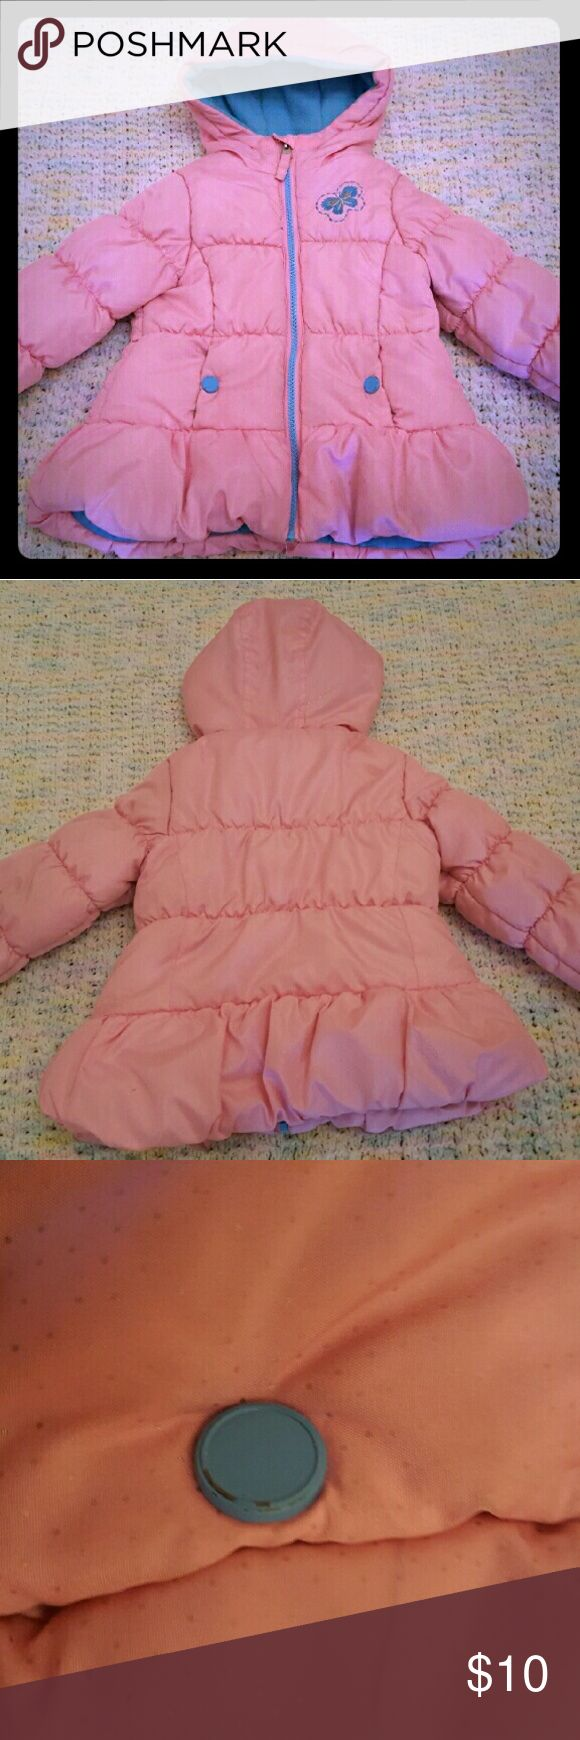 Protection System Pink Butterfly Winter Coat Pink sparkly winter coat decorated with a blue butterfly and blue accents. Moderate wear can be detected on the buttons and at the bottom hem and end of sleeves (pictured above). Perfect play condition. Size 3T. Protection System Jackets & Coats Puffers